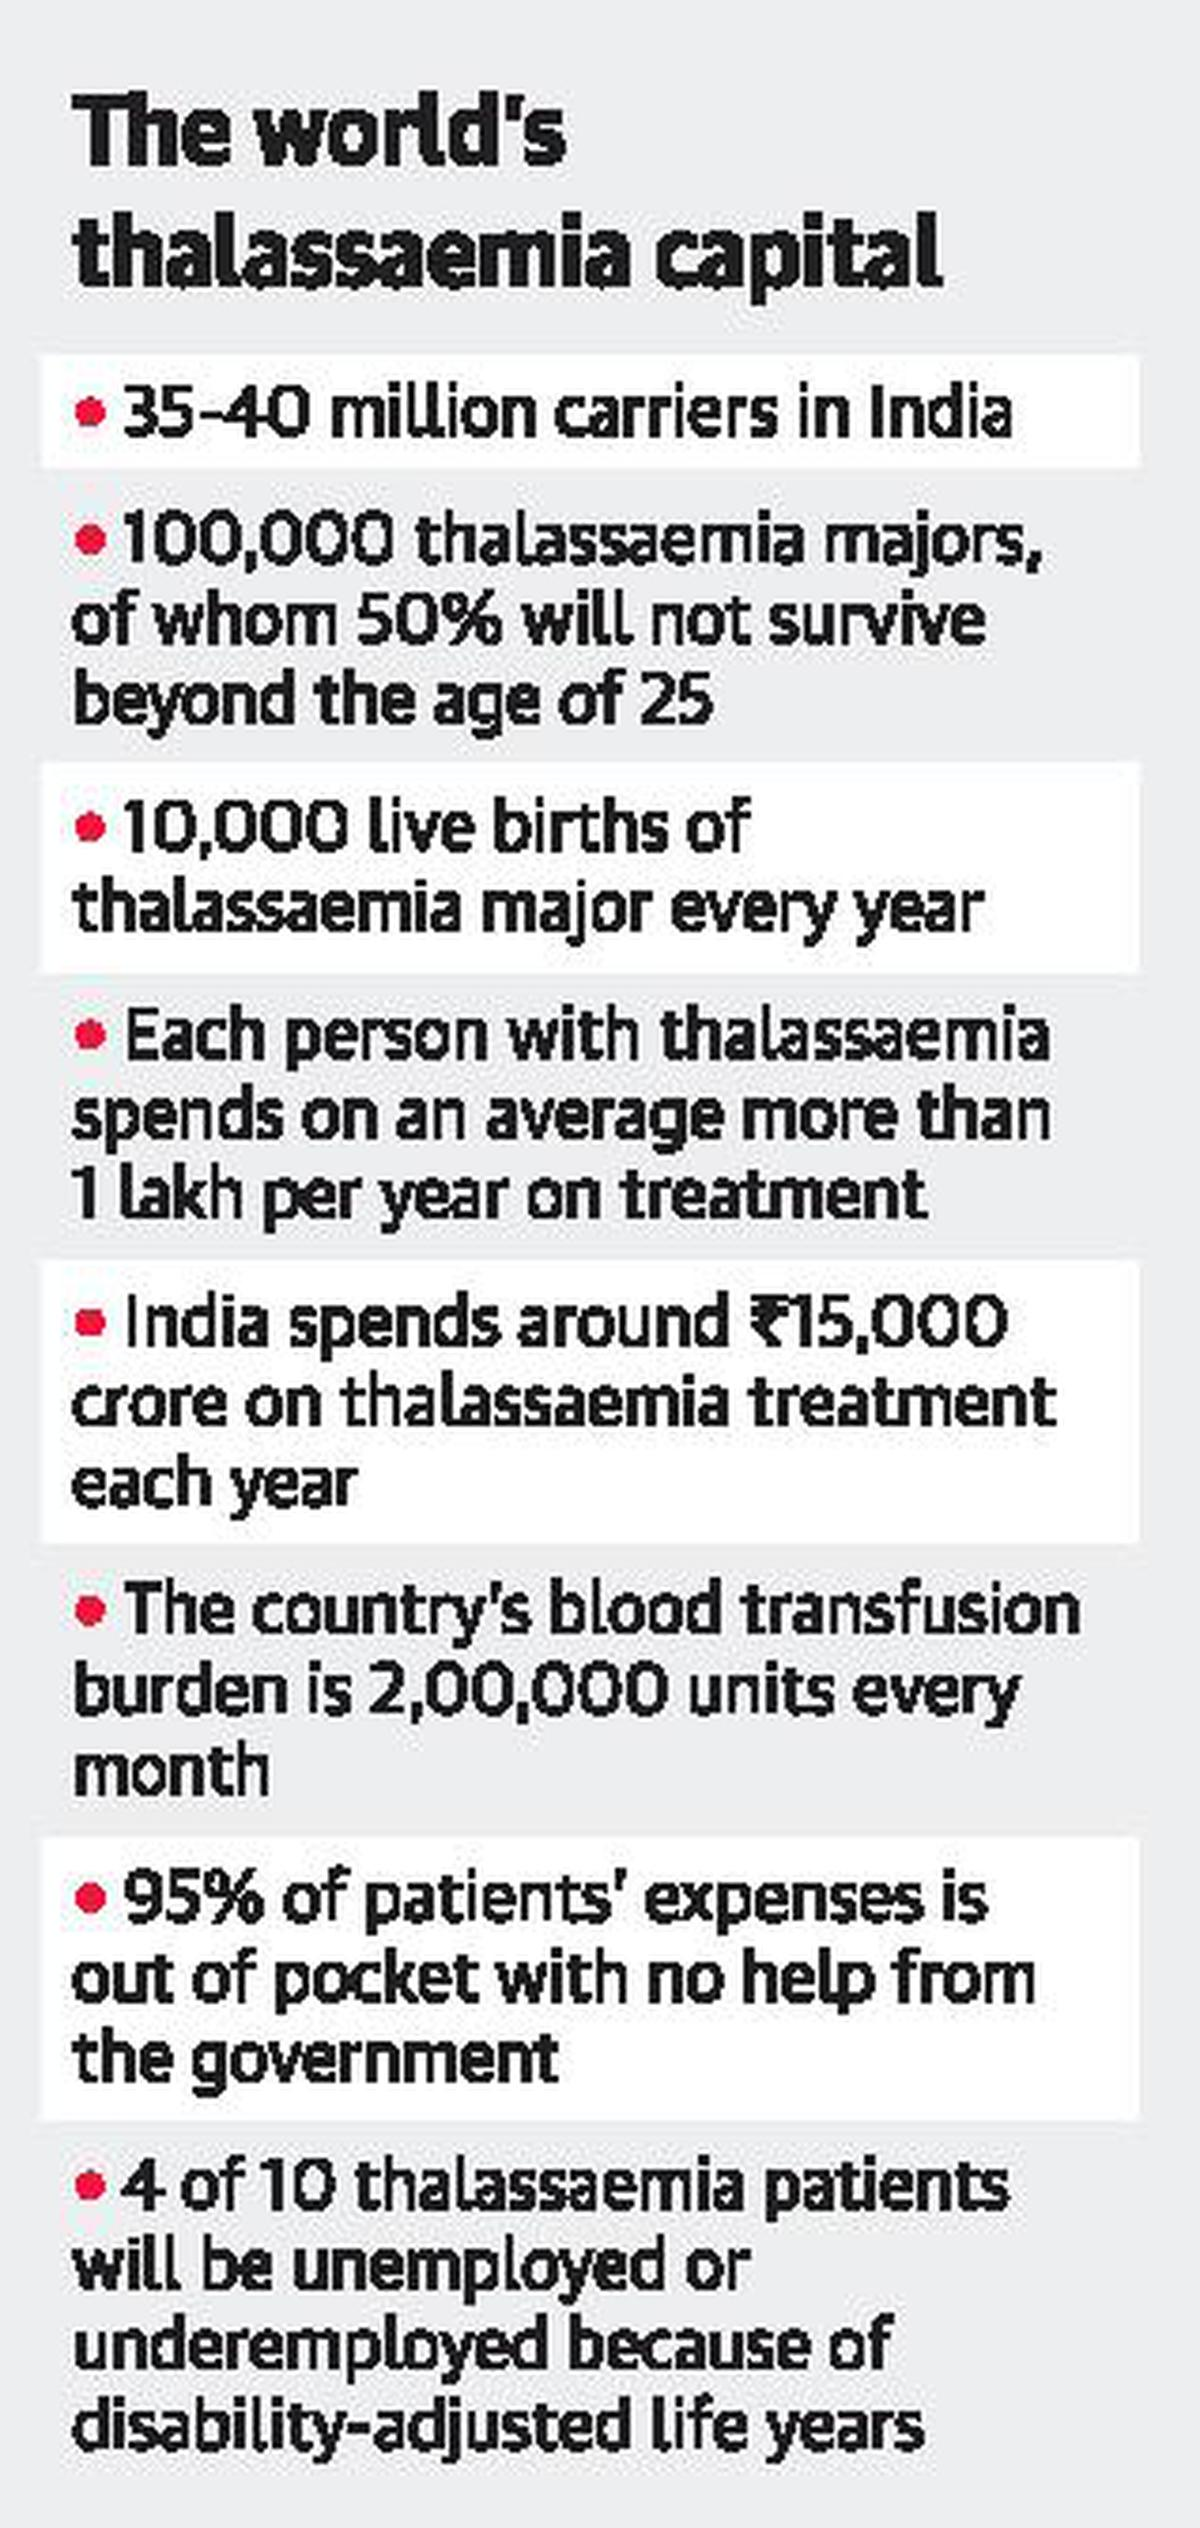 Time for a national policy on thalassaemia - The Hindu